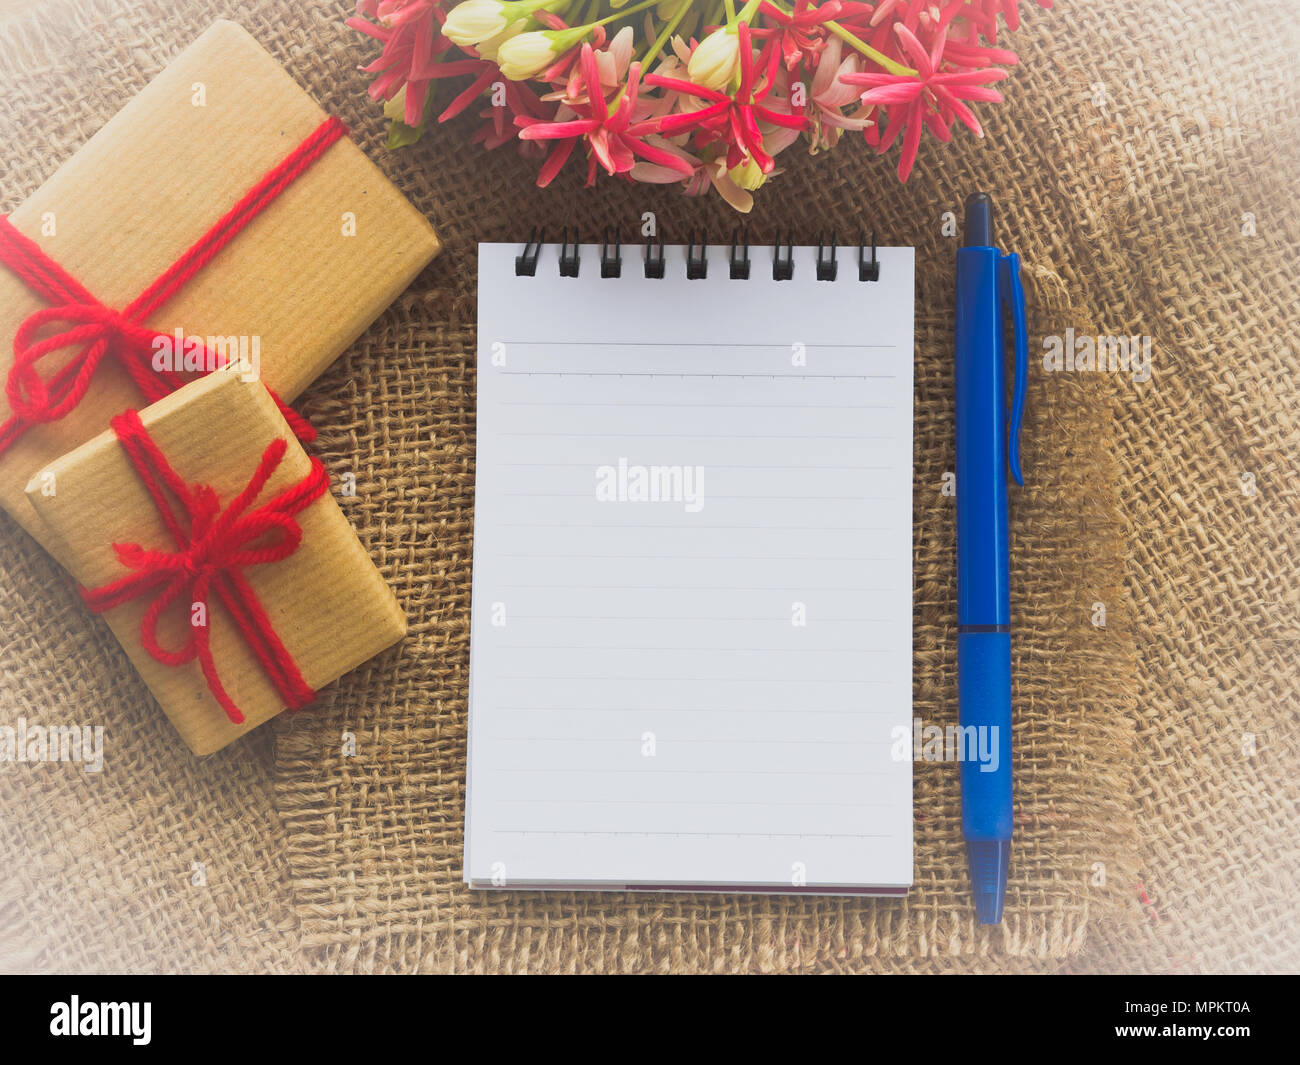 Flower Bouquet Gift And Red Flower Note Book And Blue Pen On Brown